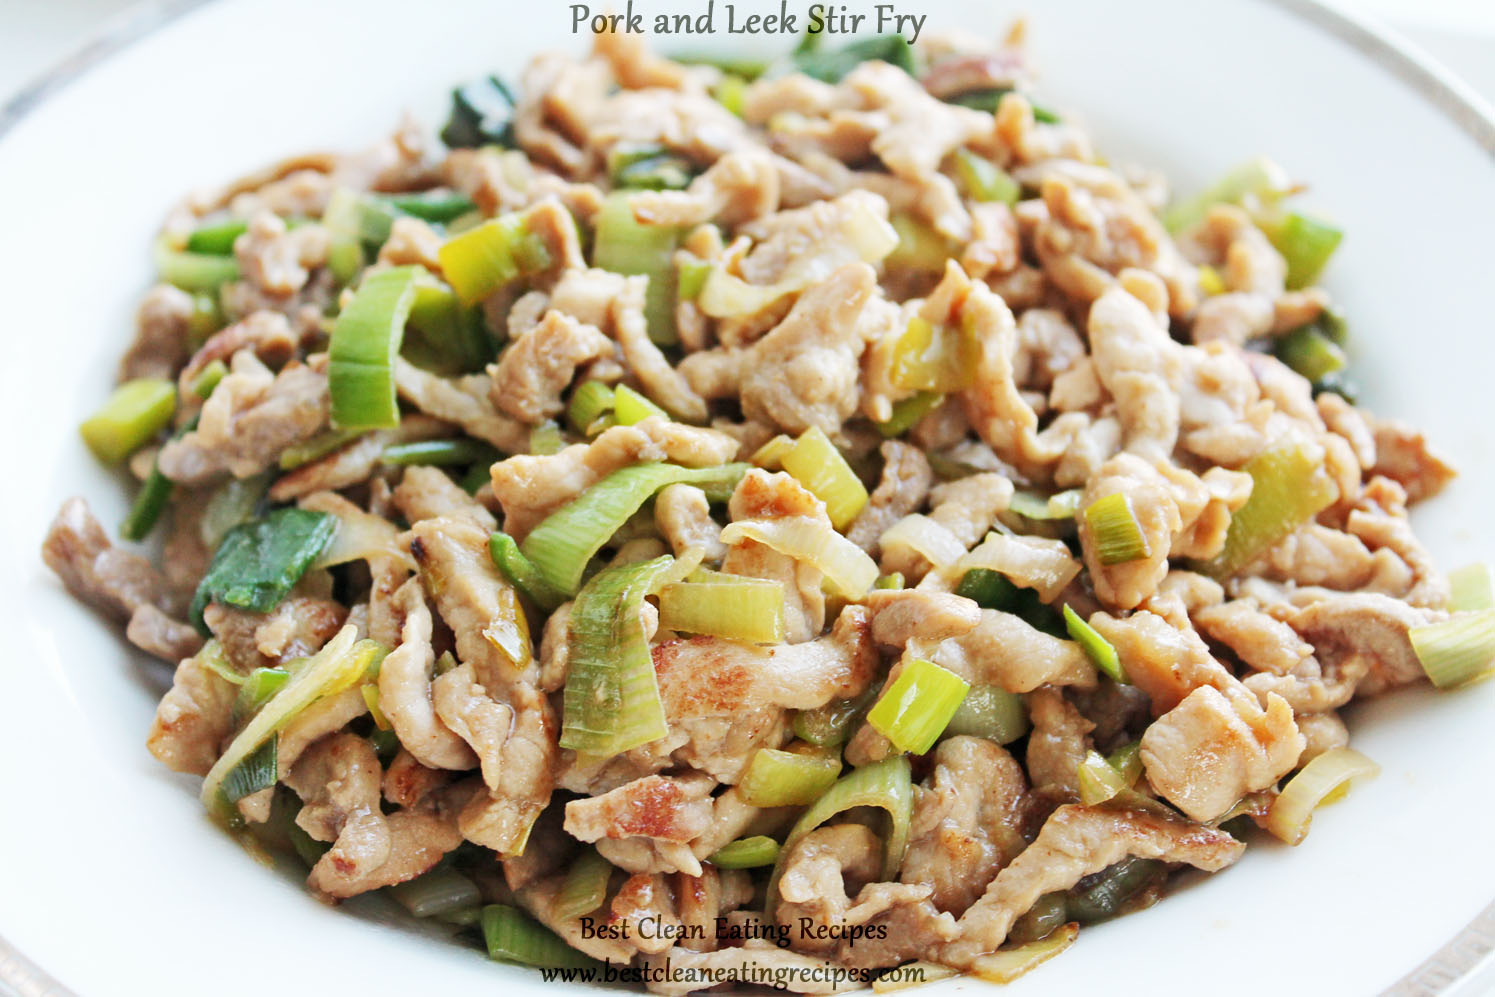 Clean Eating Dinner Recipe – Pork and Leek Stir Fry